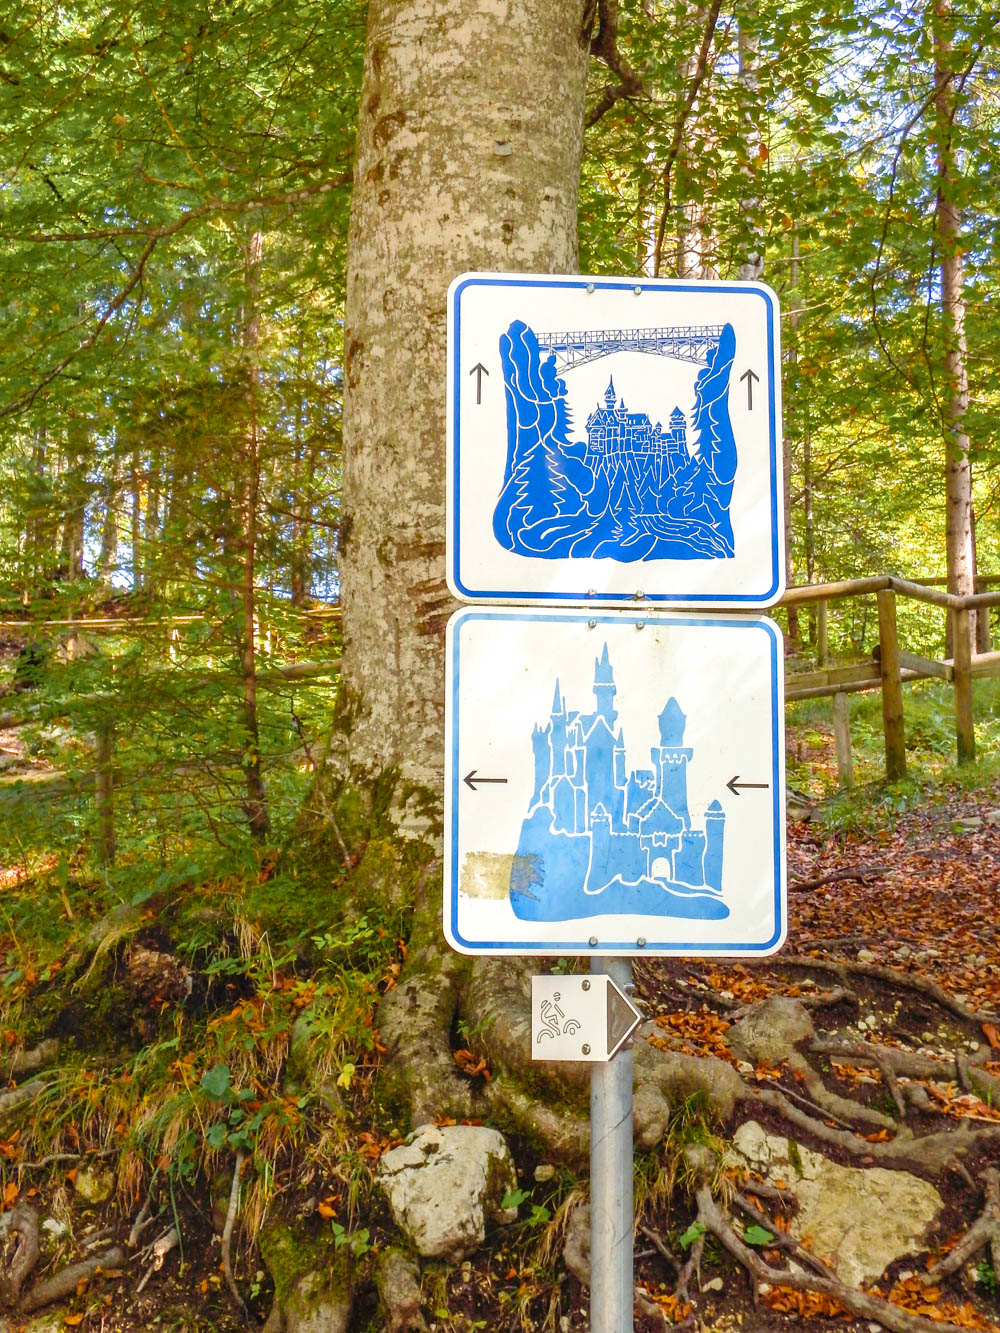 Signs to the castle and the Marienbrucke bridge | 10 Crucial Tips to Visit Neuschwanstein Castle Skillfully and Worry-Free | Tips for visiting Neuschwanstein Castle in Bavaria, Germany | Neuschwanstein Castle tour tickets